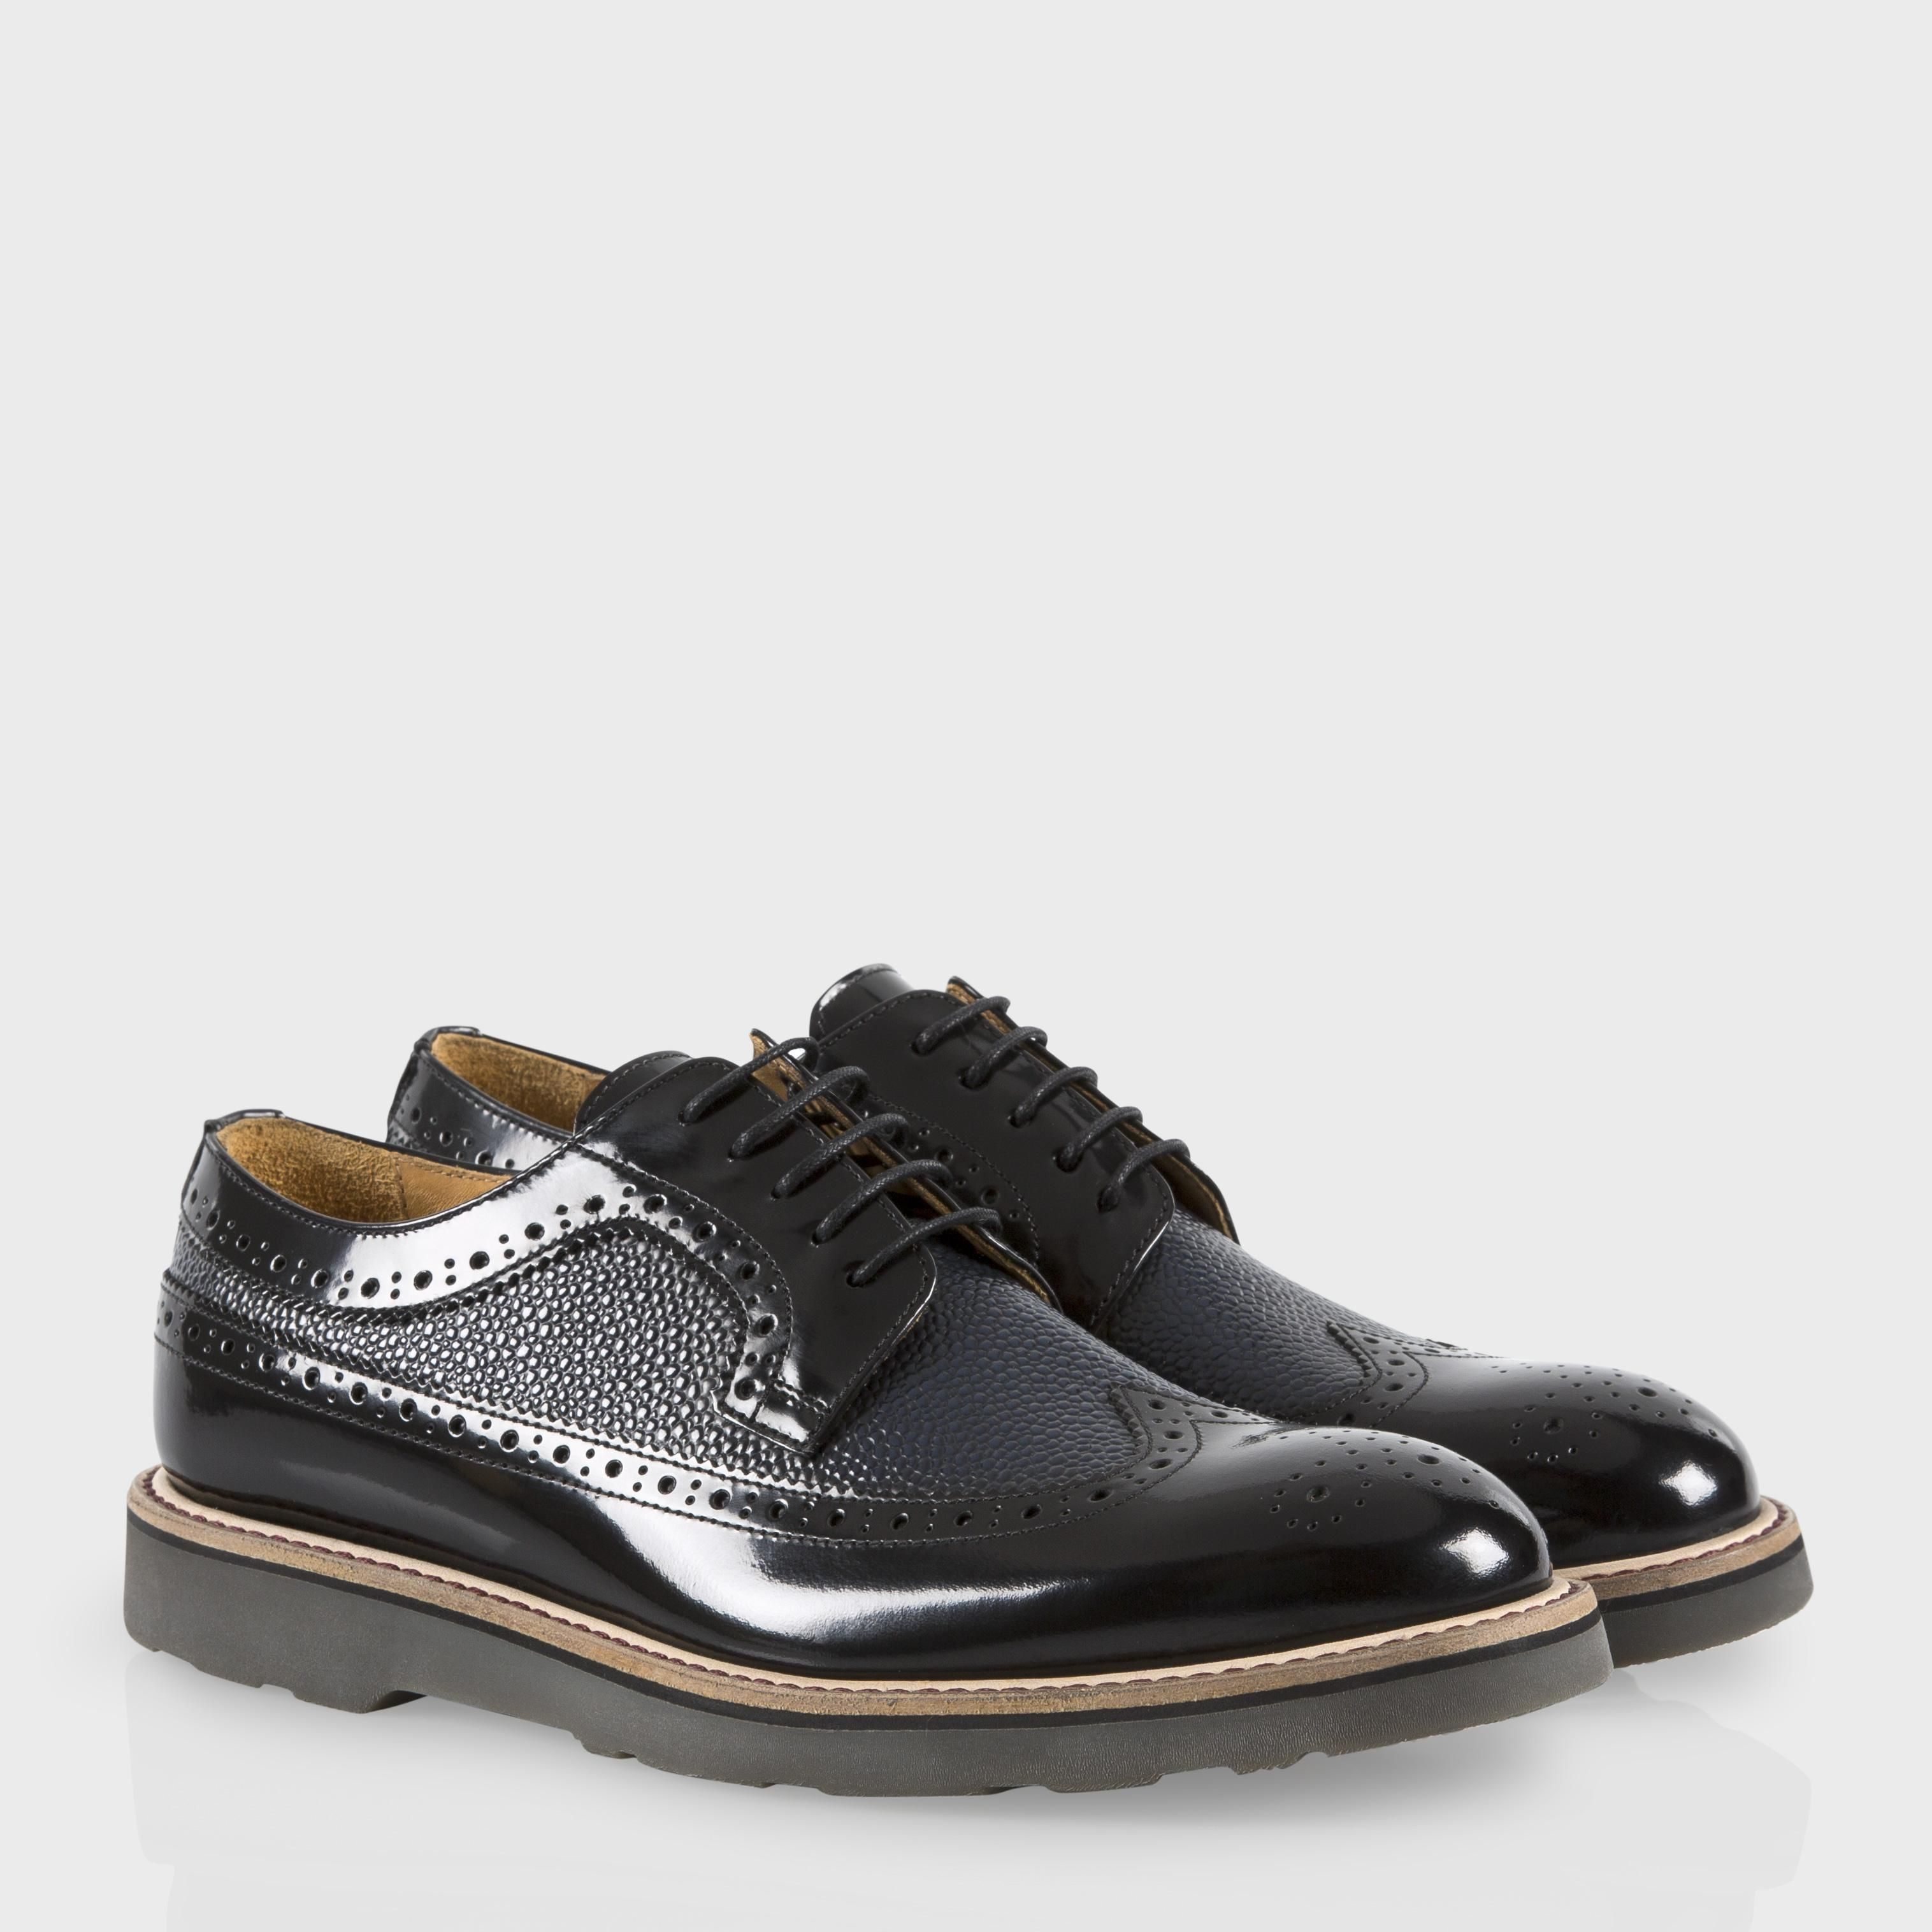 Paul Smith Womens Shoes  Black HighShine Leather Grand Brogues